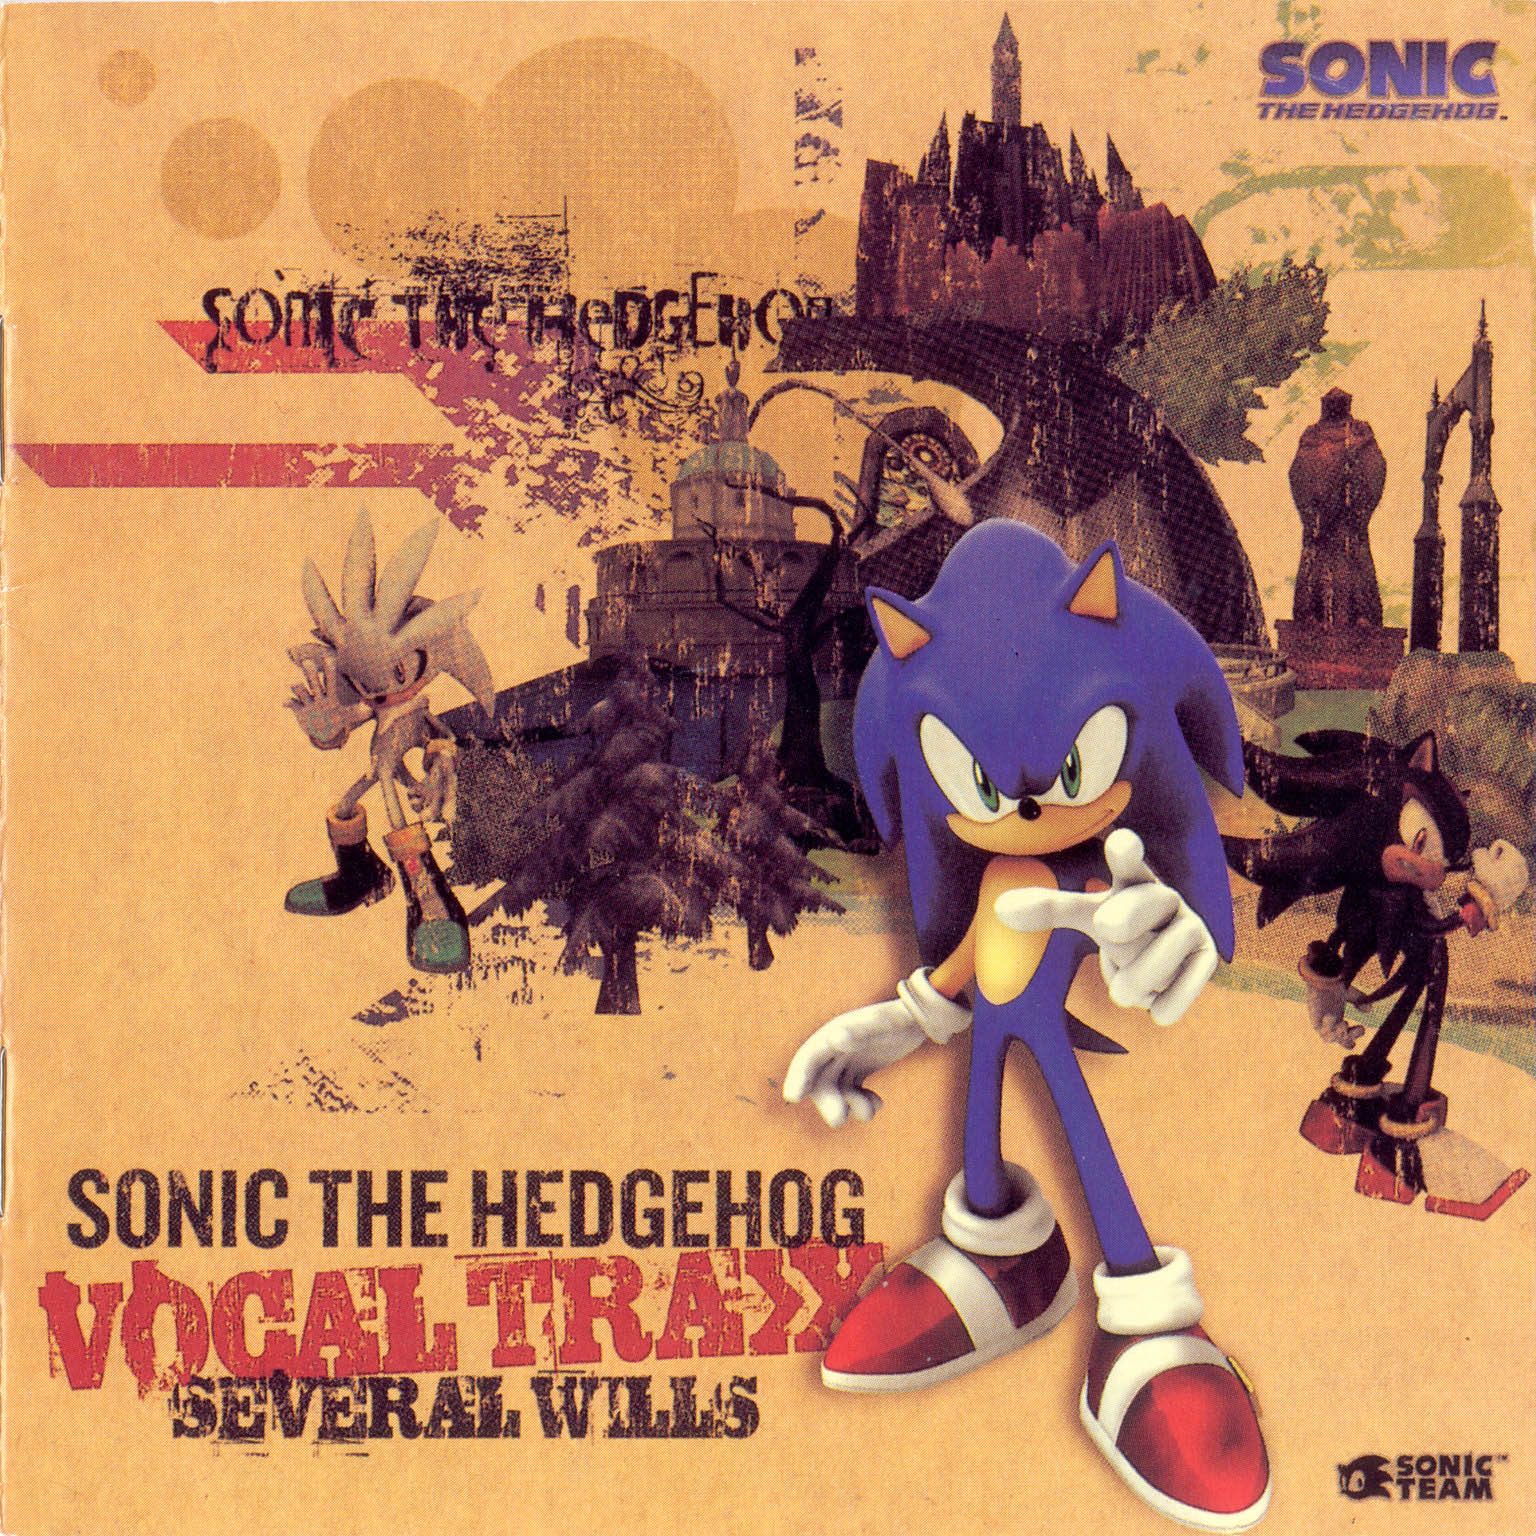 File:Several Wills- Sonic the Hedgehog Vocal Trax.jpg